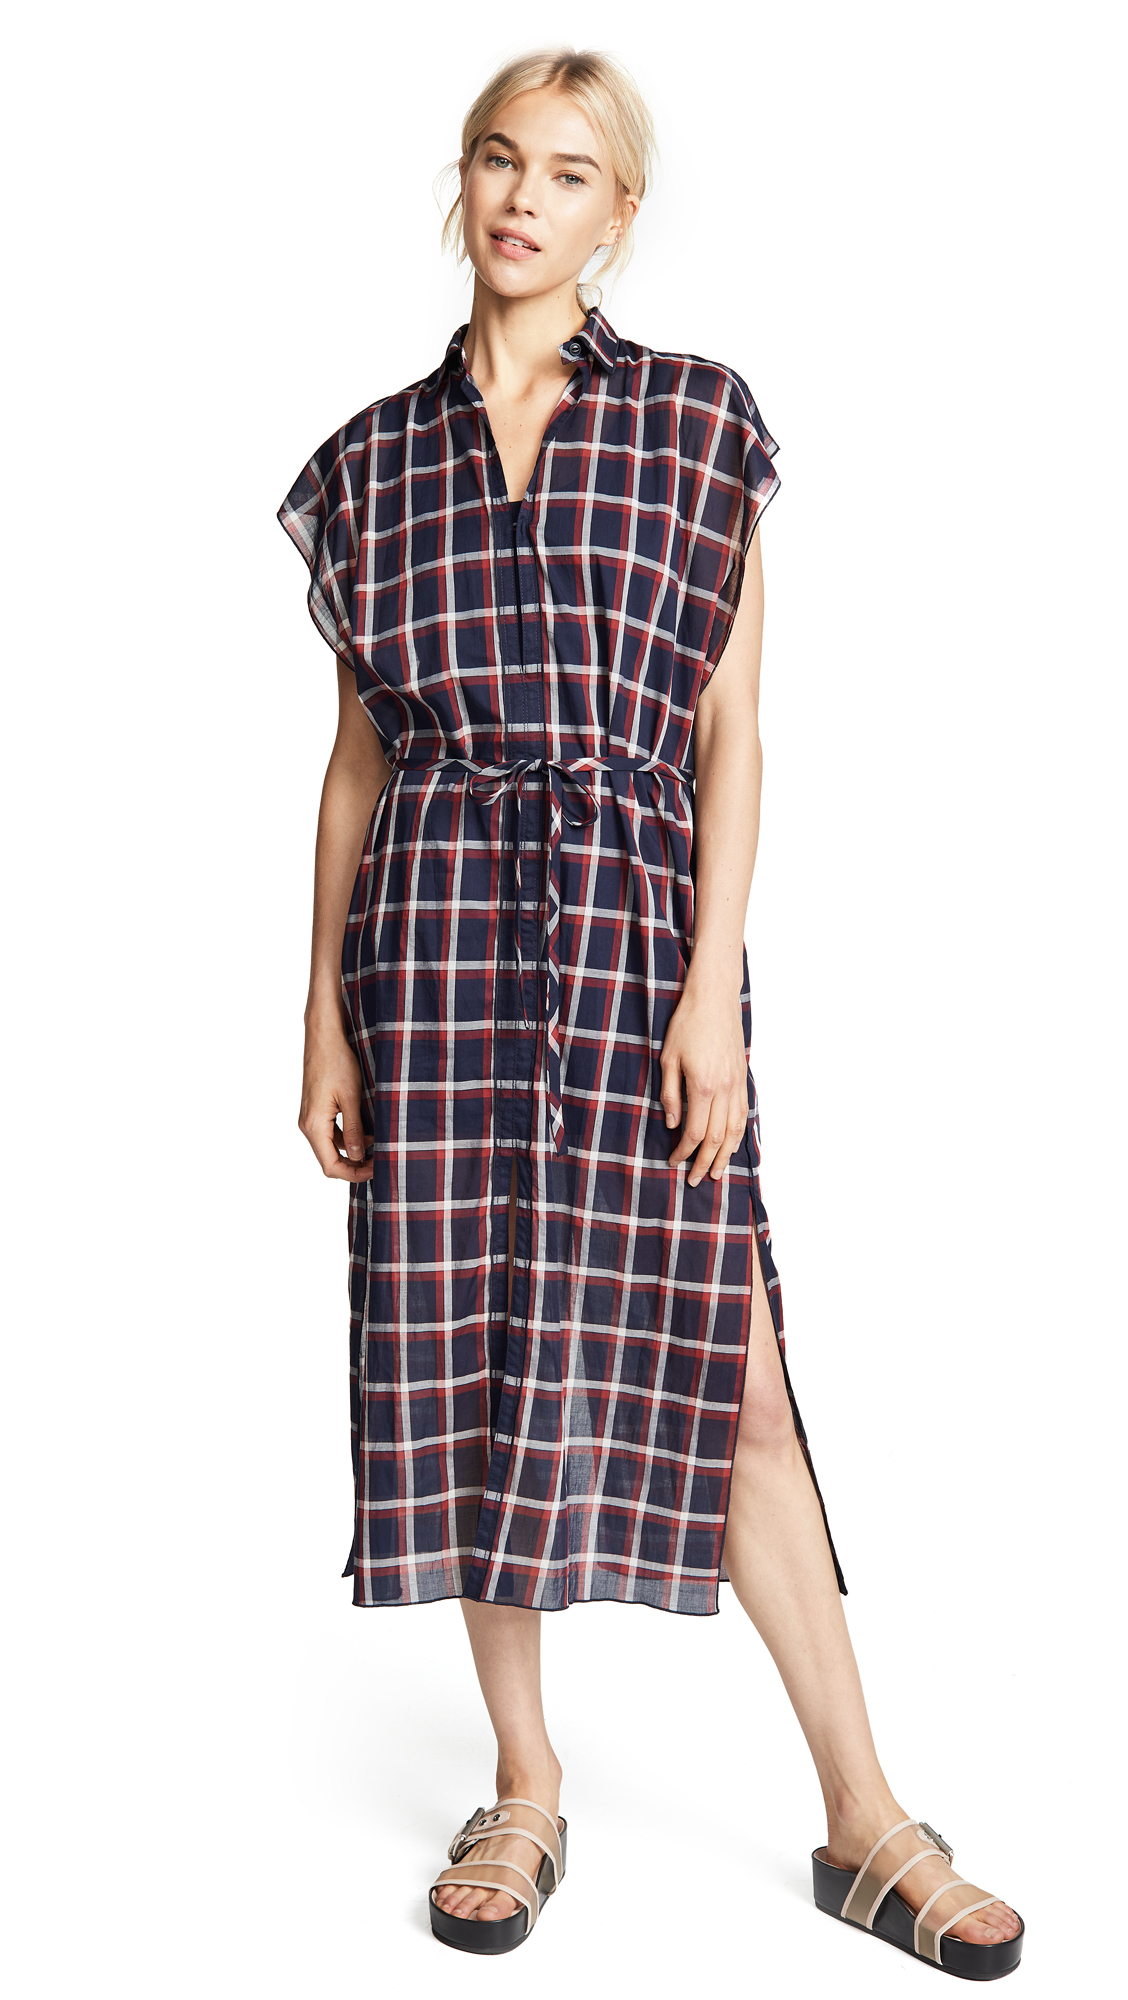 Rag & Bone Sybil Dress In Navy Multi